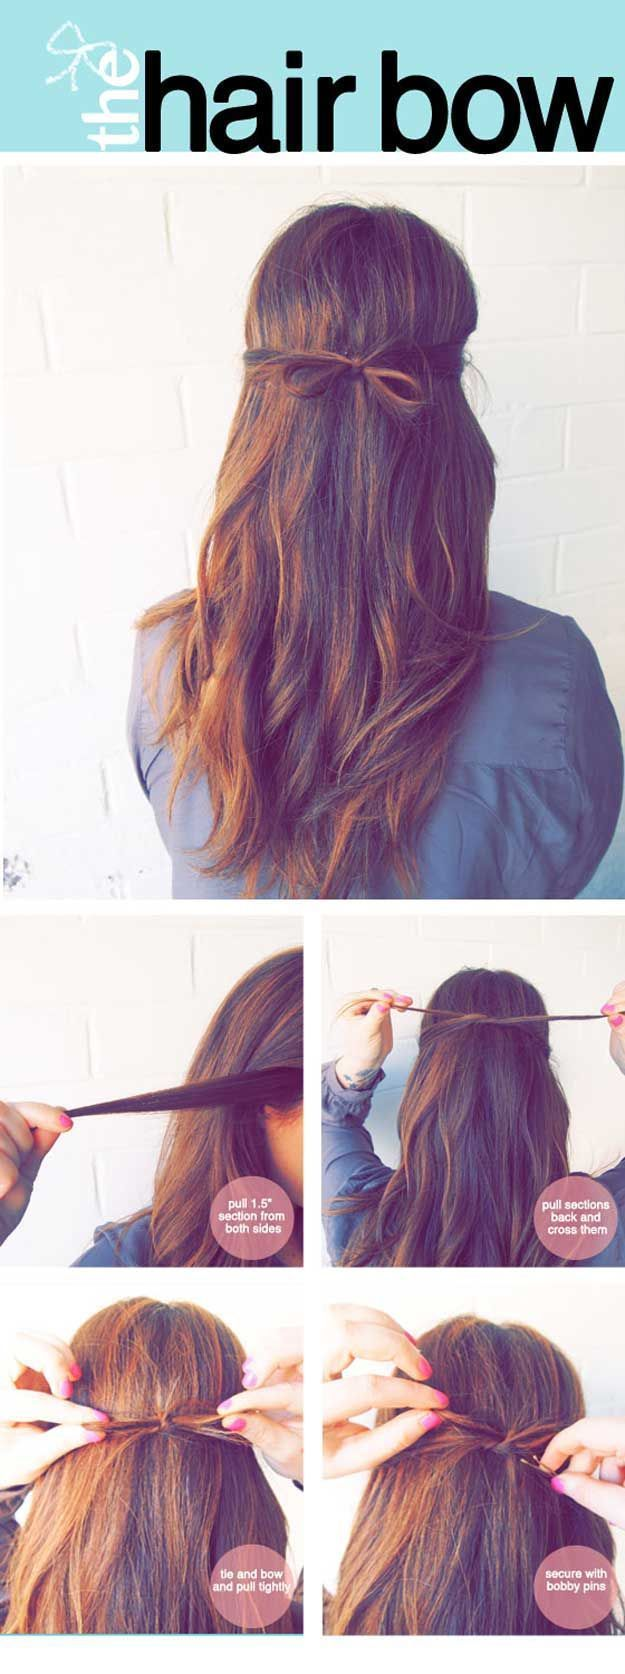 Best minute hairstyles the hair bow quick and easy hairstyles